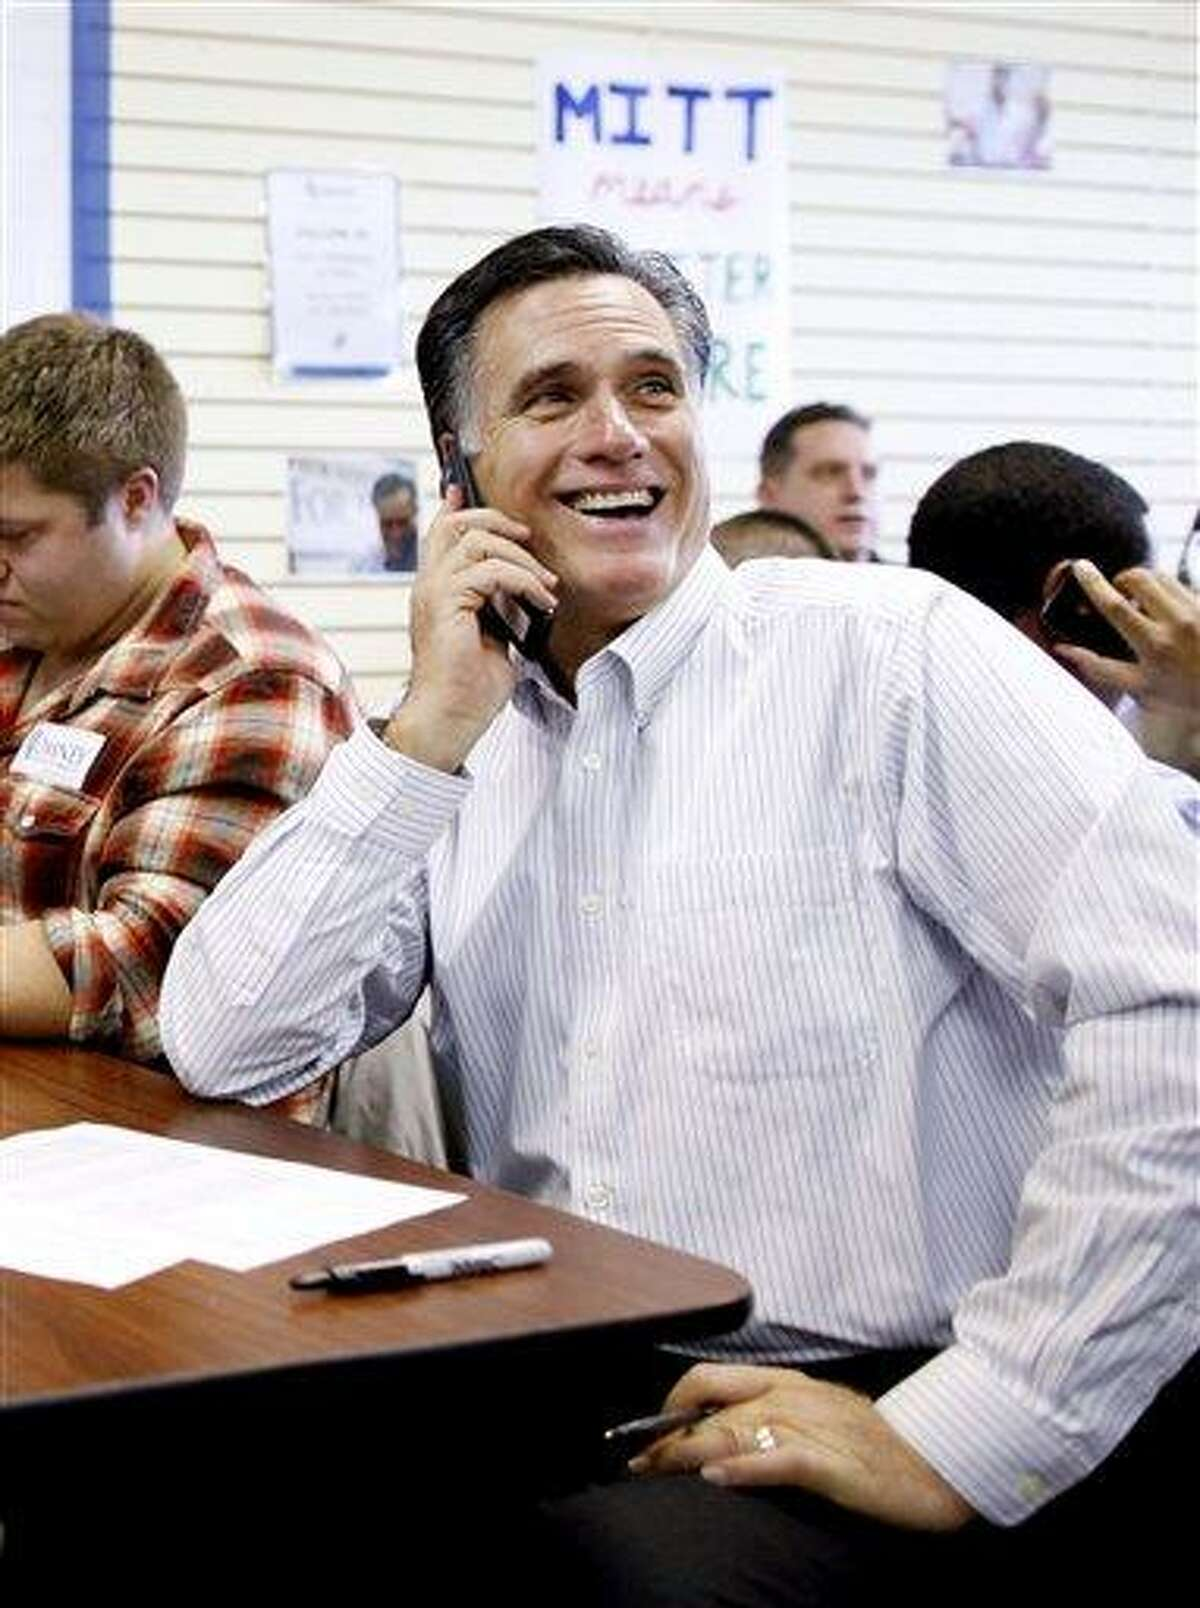 Republican presidential candidate and former Massachusetts Gov. Mitt Romney sits with volunteers and calls likely voters ahead of Tuesday's primary election in Manchester, N.H. Associated Press